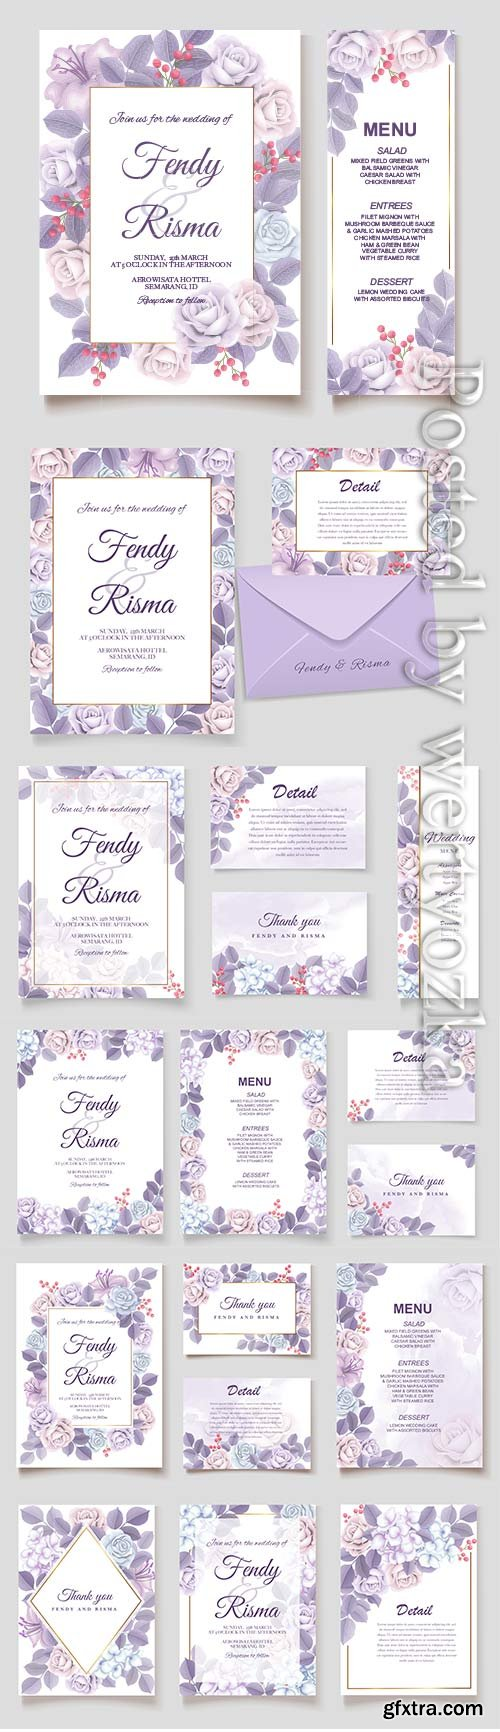 Elegant vector wedding invitation floral design